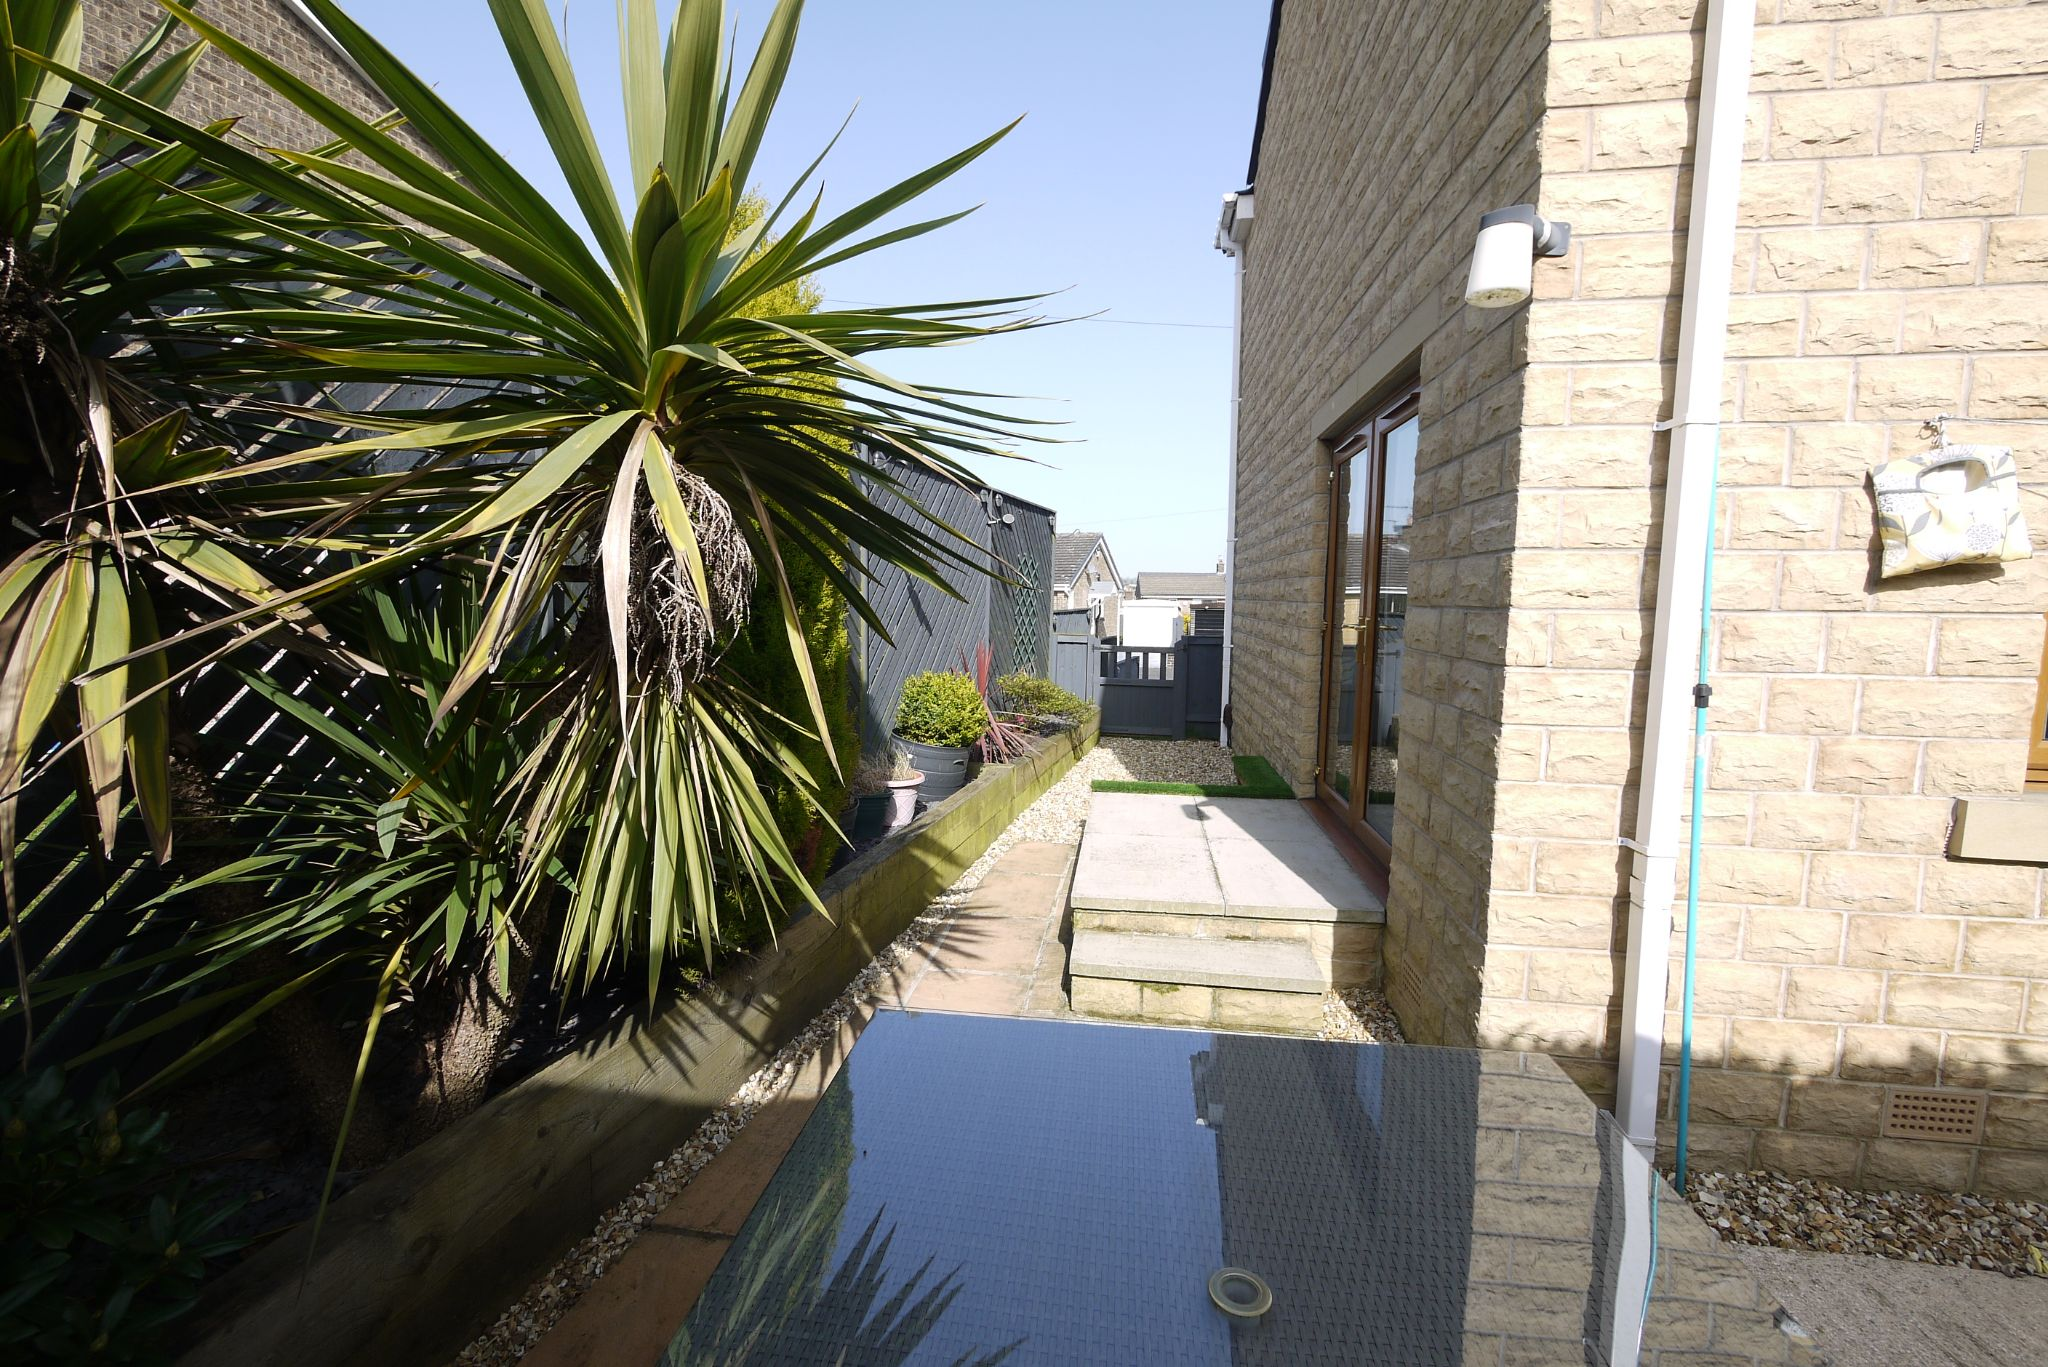 4 bedroom detached house SSTC in Brighouse - Side garden.